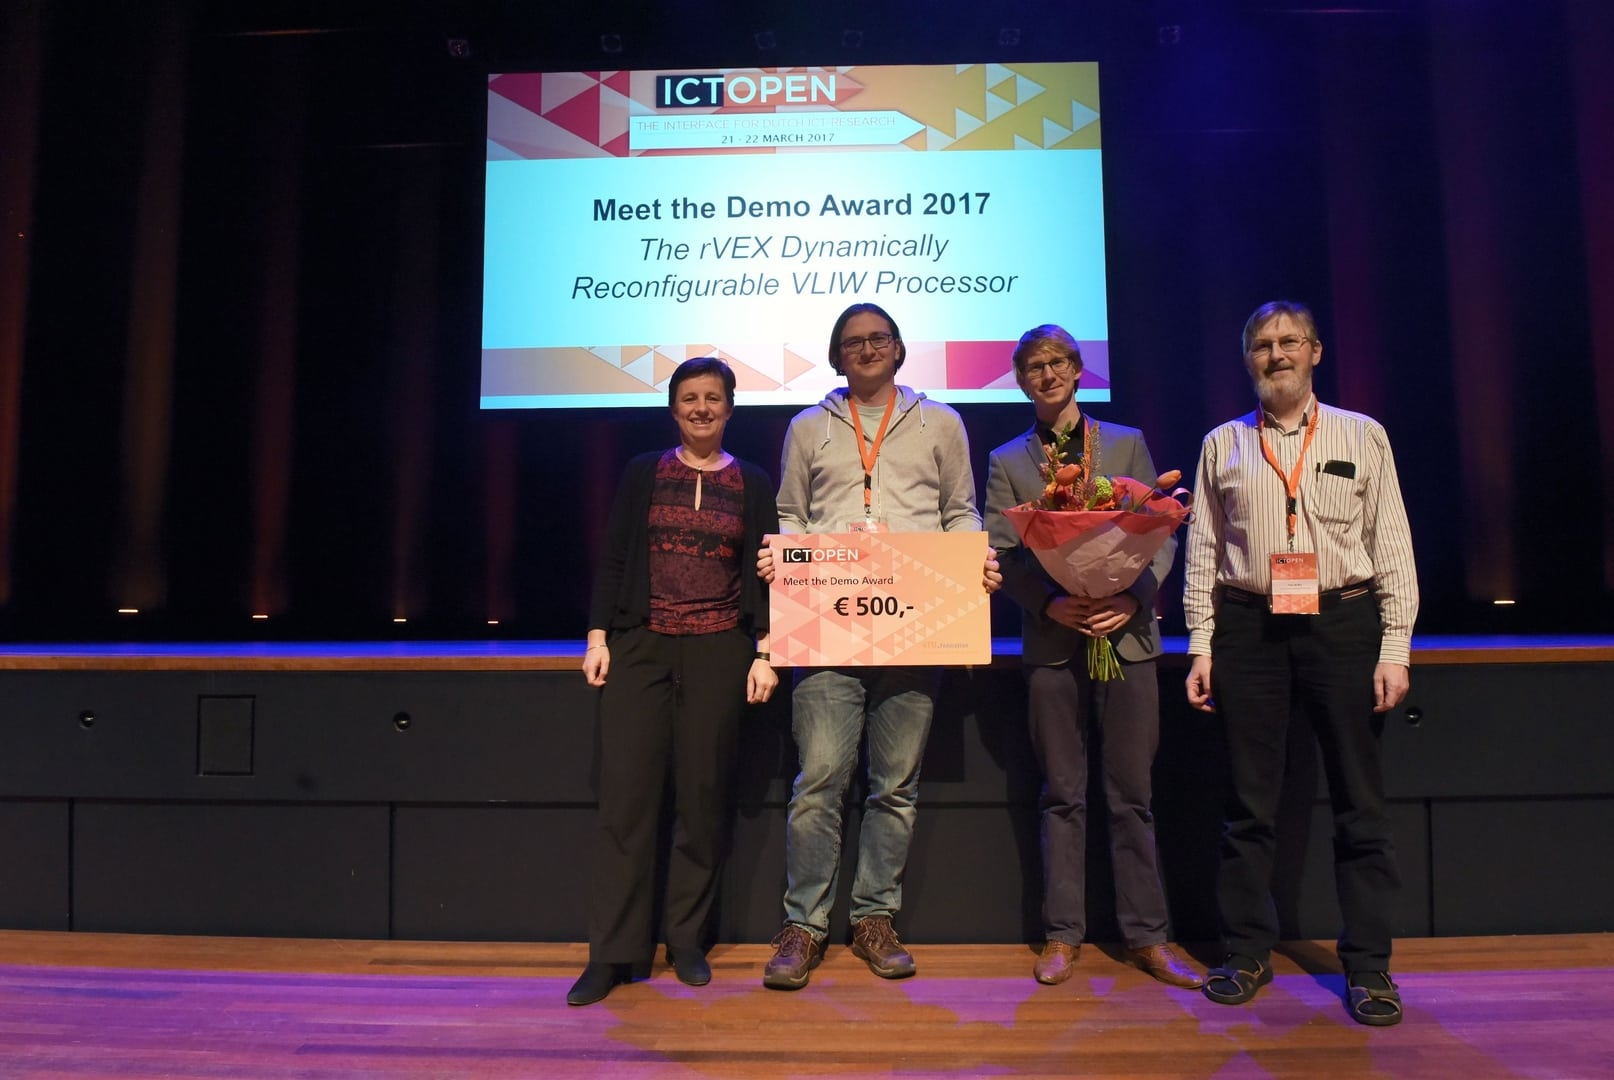 ict.open 2017 Meet the Demo award